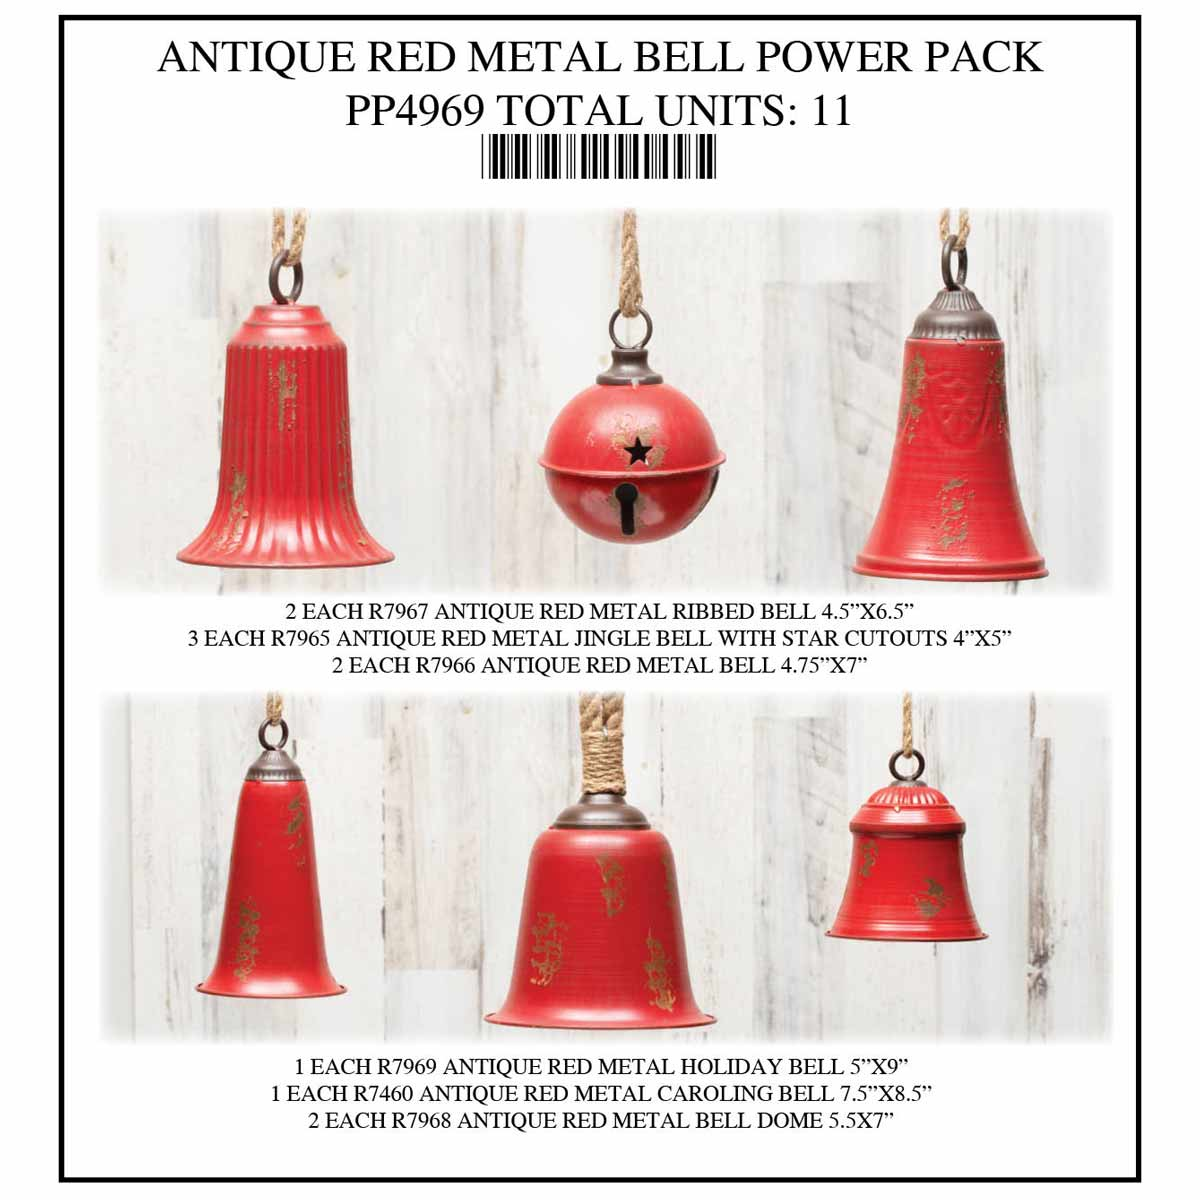 BELL RED POWER PACK 11 UNITS